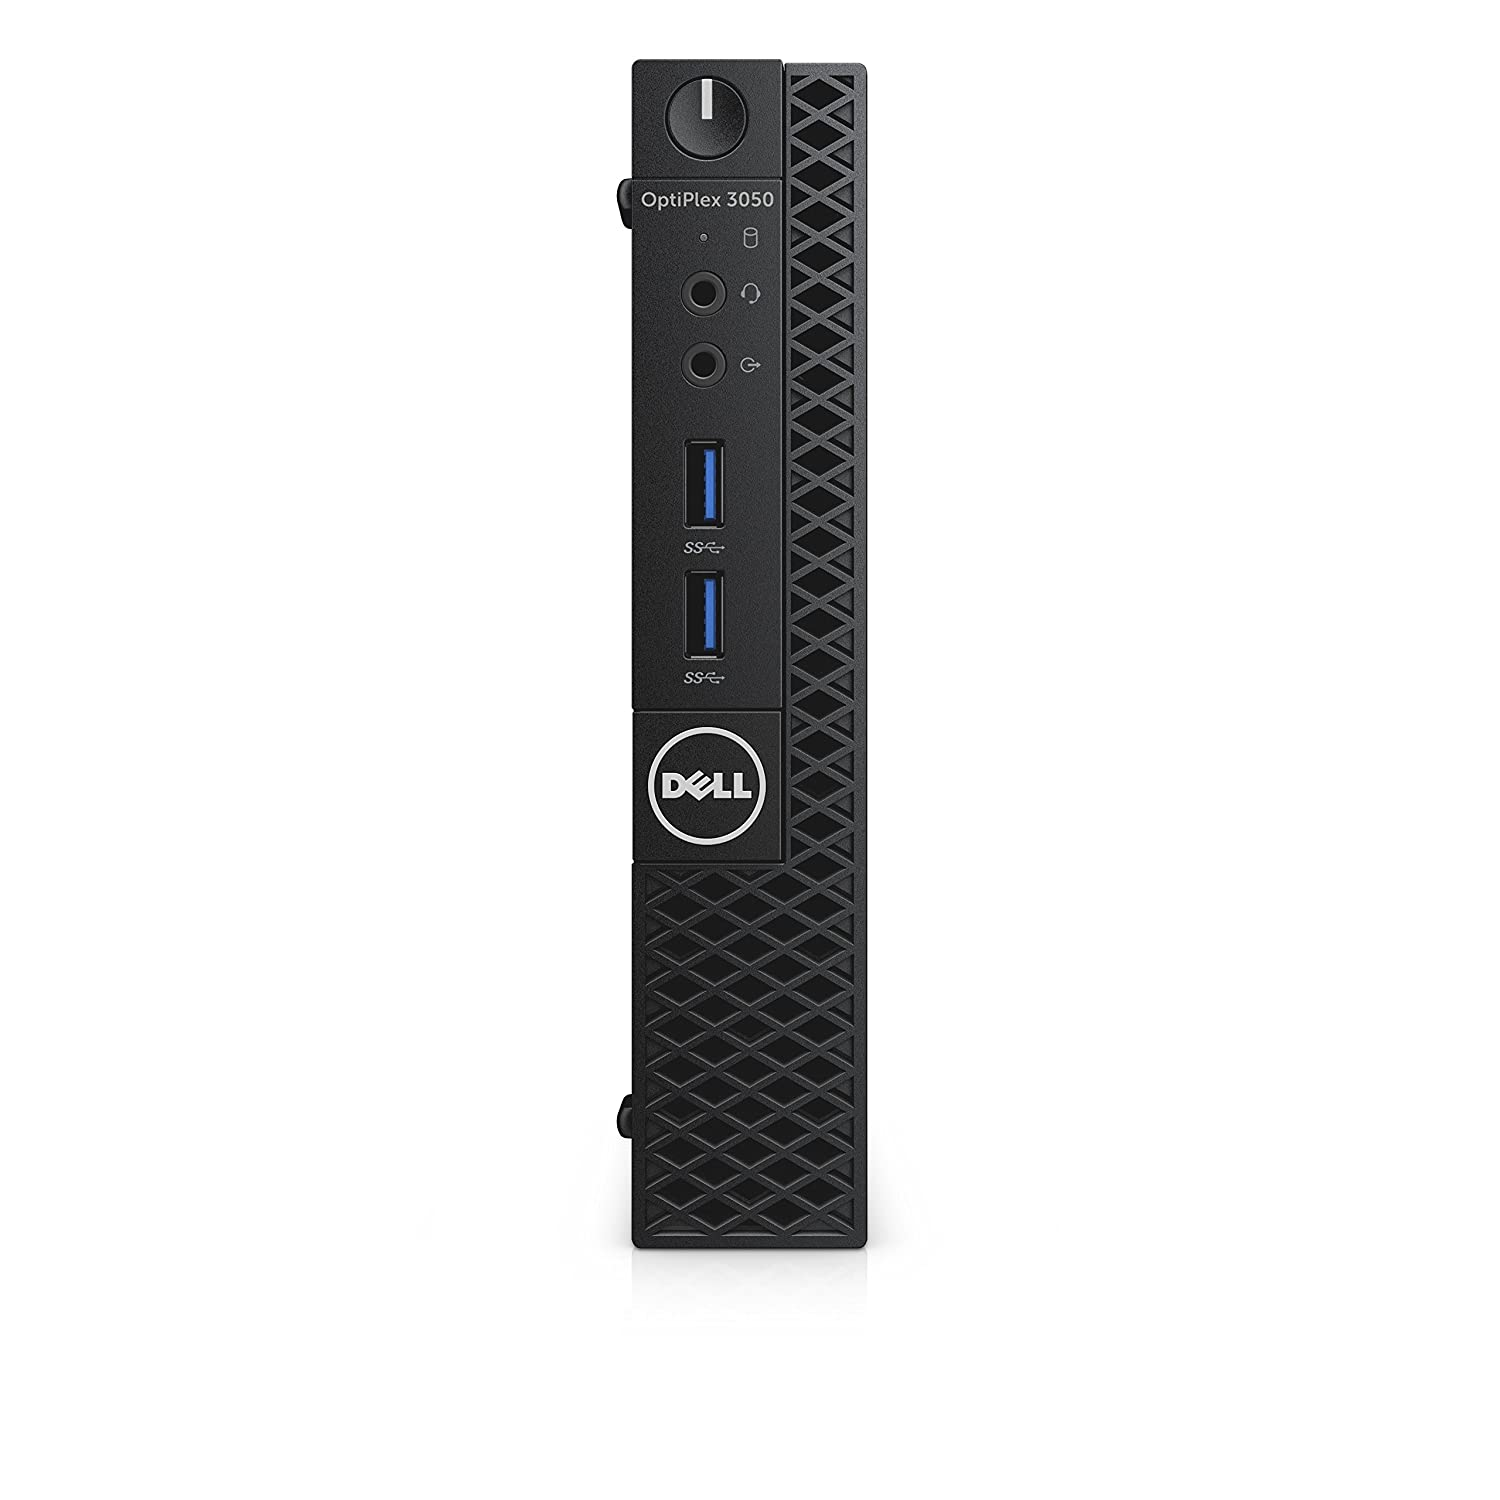 Dell OptiPlex 3050 3.4GHz i3-7100T Micro Torre 7ª generación de procesadores Intel® Core i3 Negro Mini PC OptiPlex 3050, 3,4 GHz, 7ª generación de procesadores Intel® Core i3, i3-